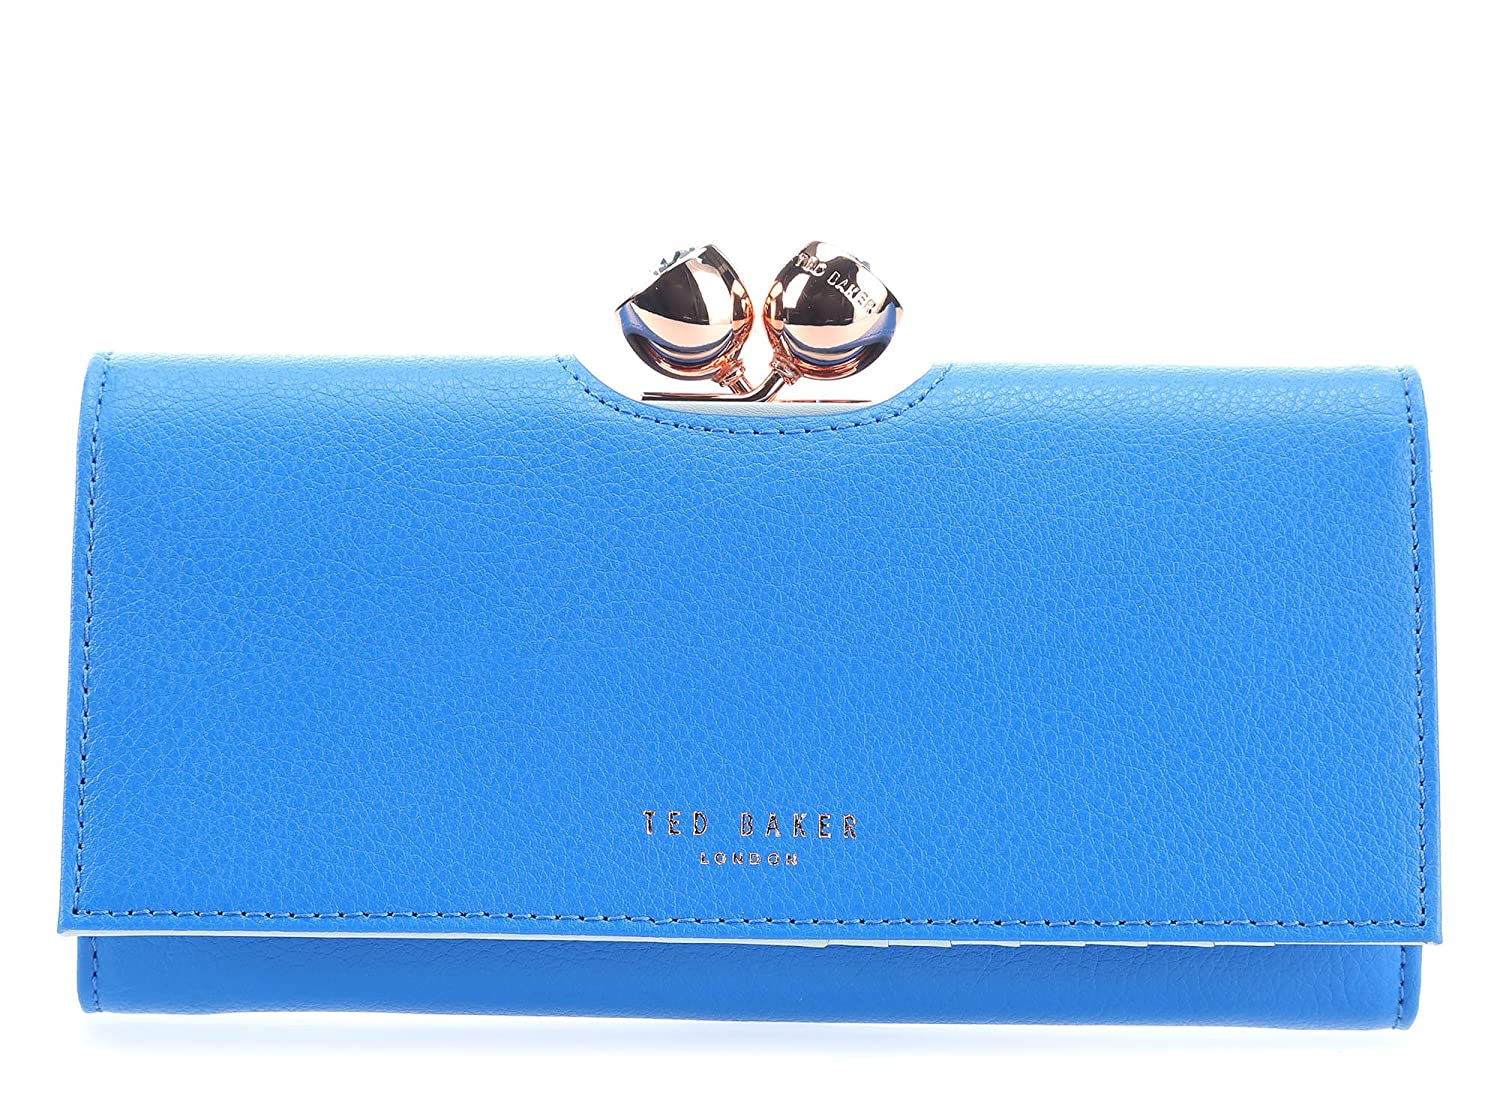 f3c31216a0 Ted Baker Muscovy Wallet blue: Amazon.co.uk: Luggage